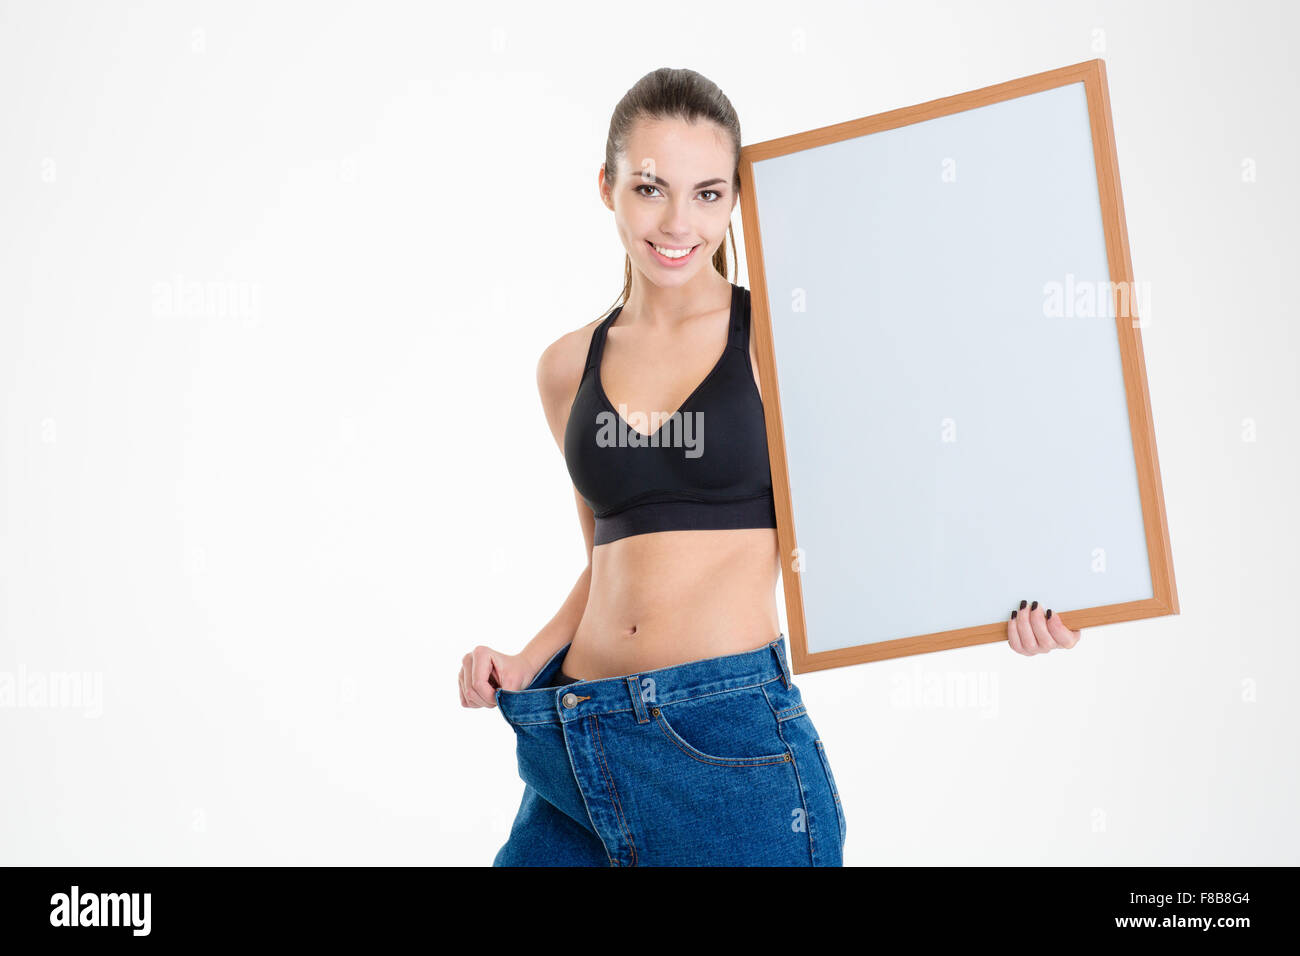 Background image too big - Smiling Cute Fitness Girl In Old Jeans Became Too Big Holding Blank Board Isolated Over White Background